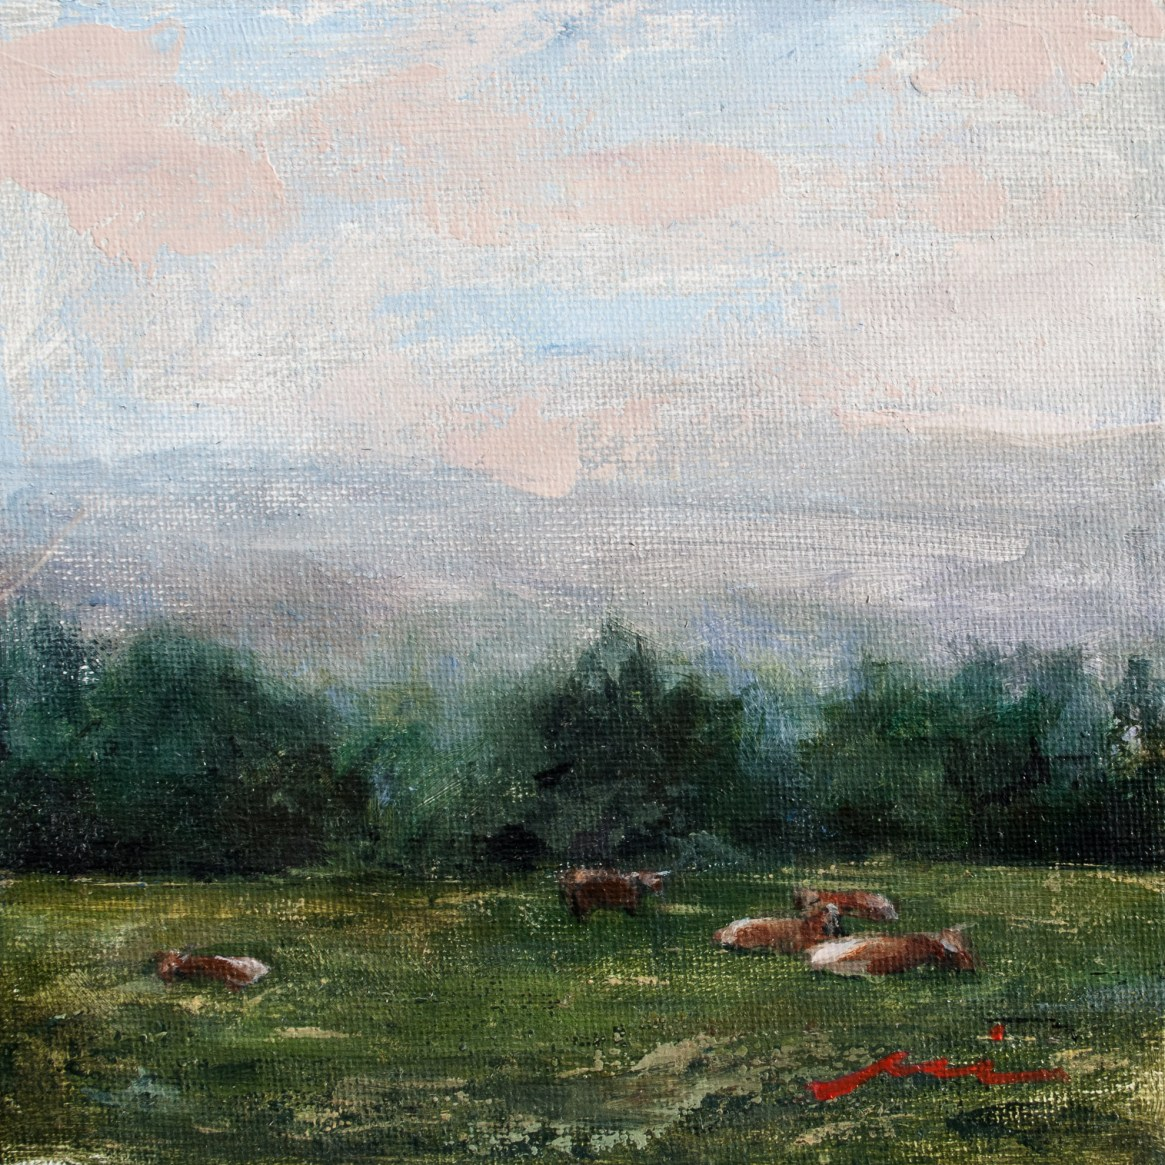 Cows in Field Study, 2018